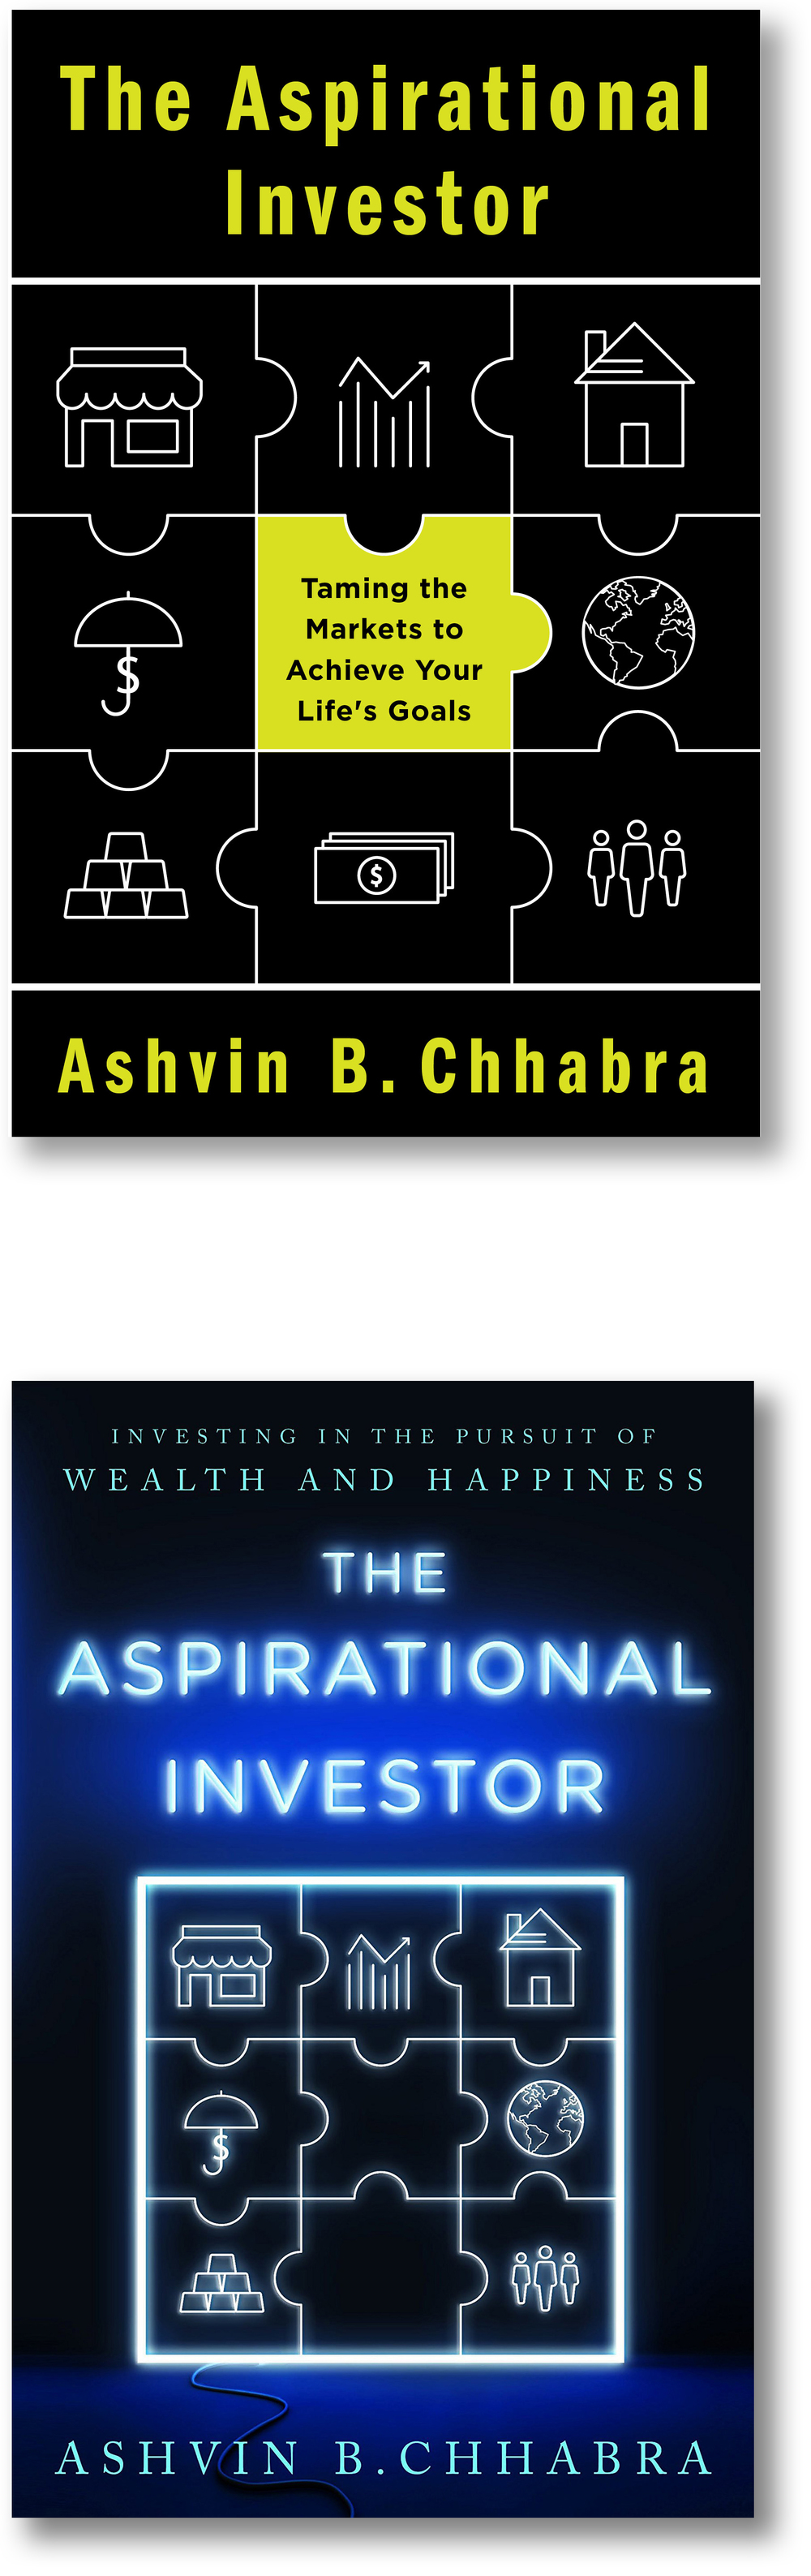 The Indian Edition of The Aspirational Investor now available for purchase on Amazon India.